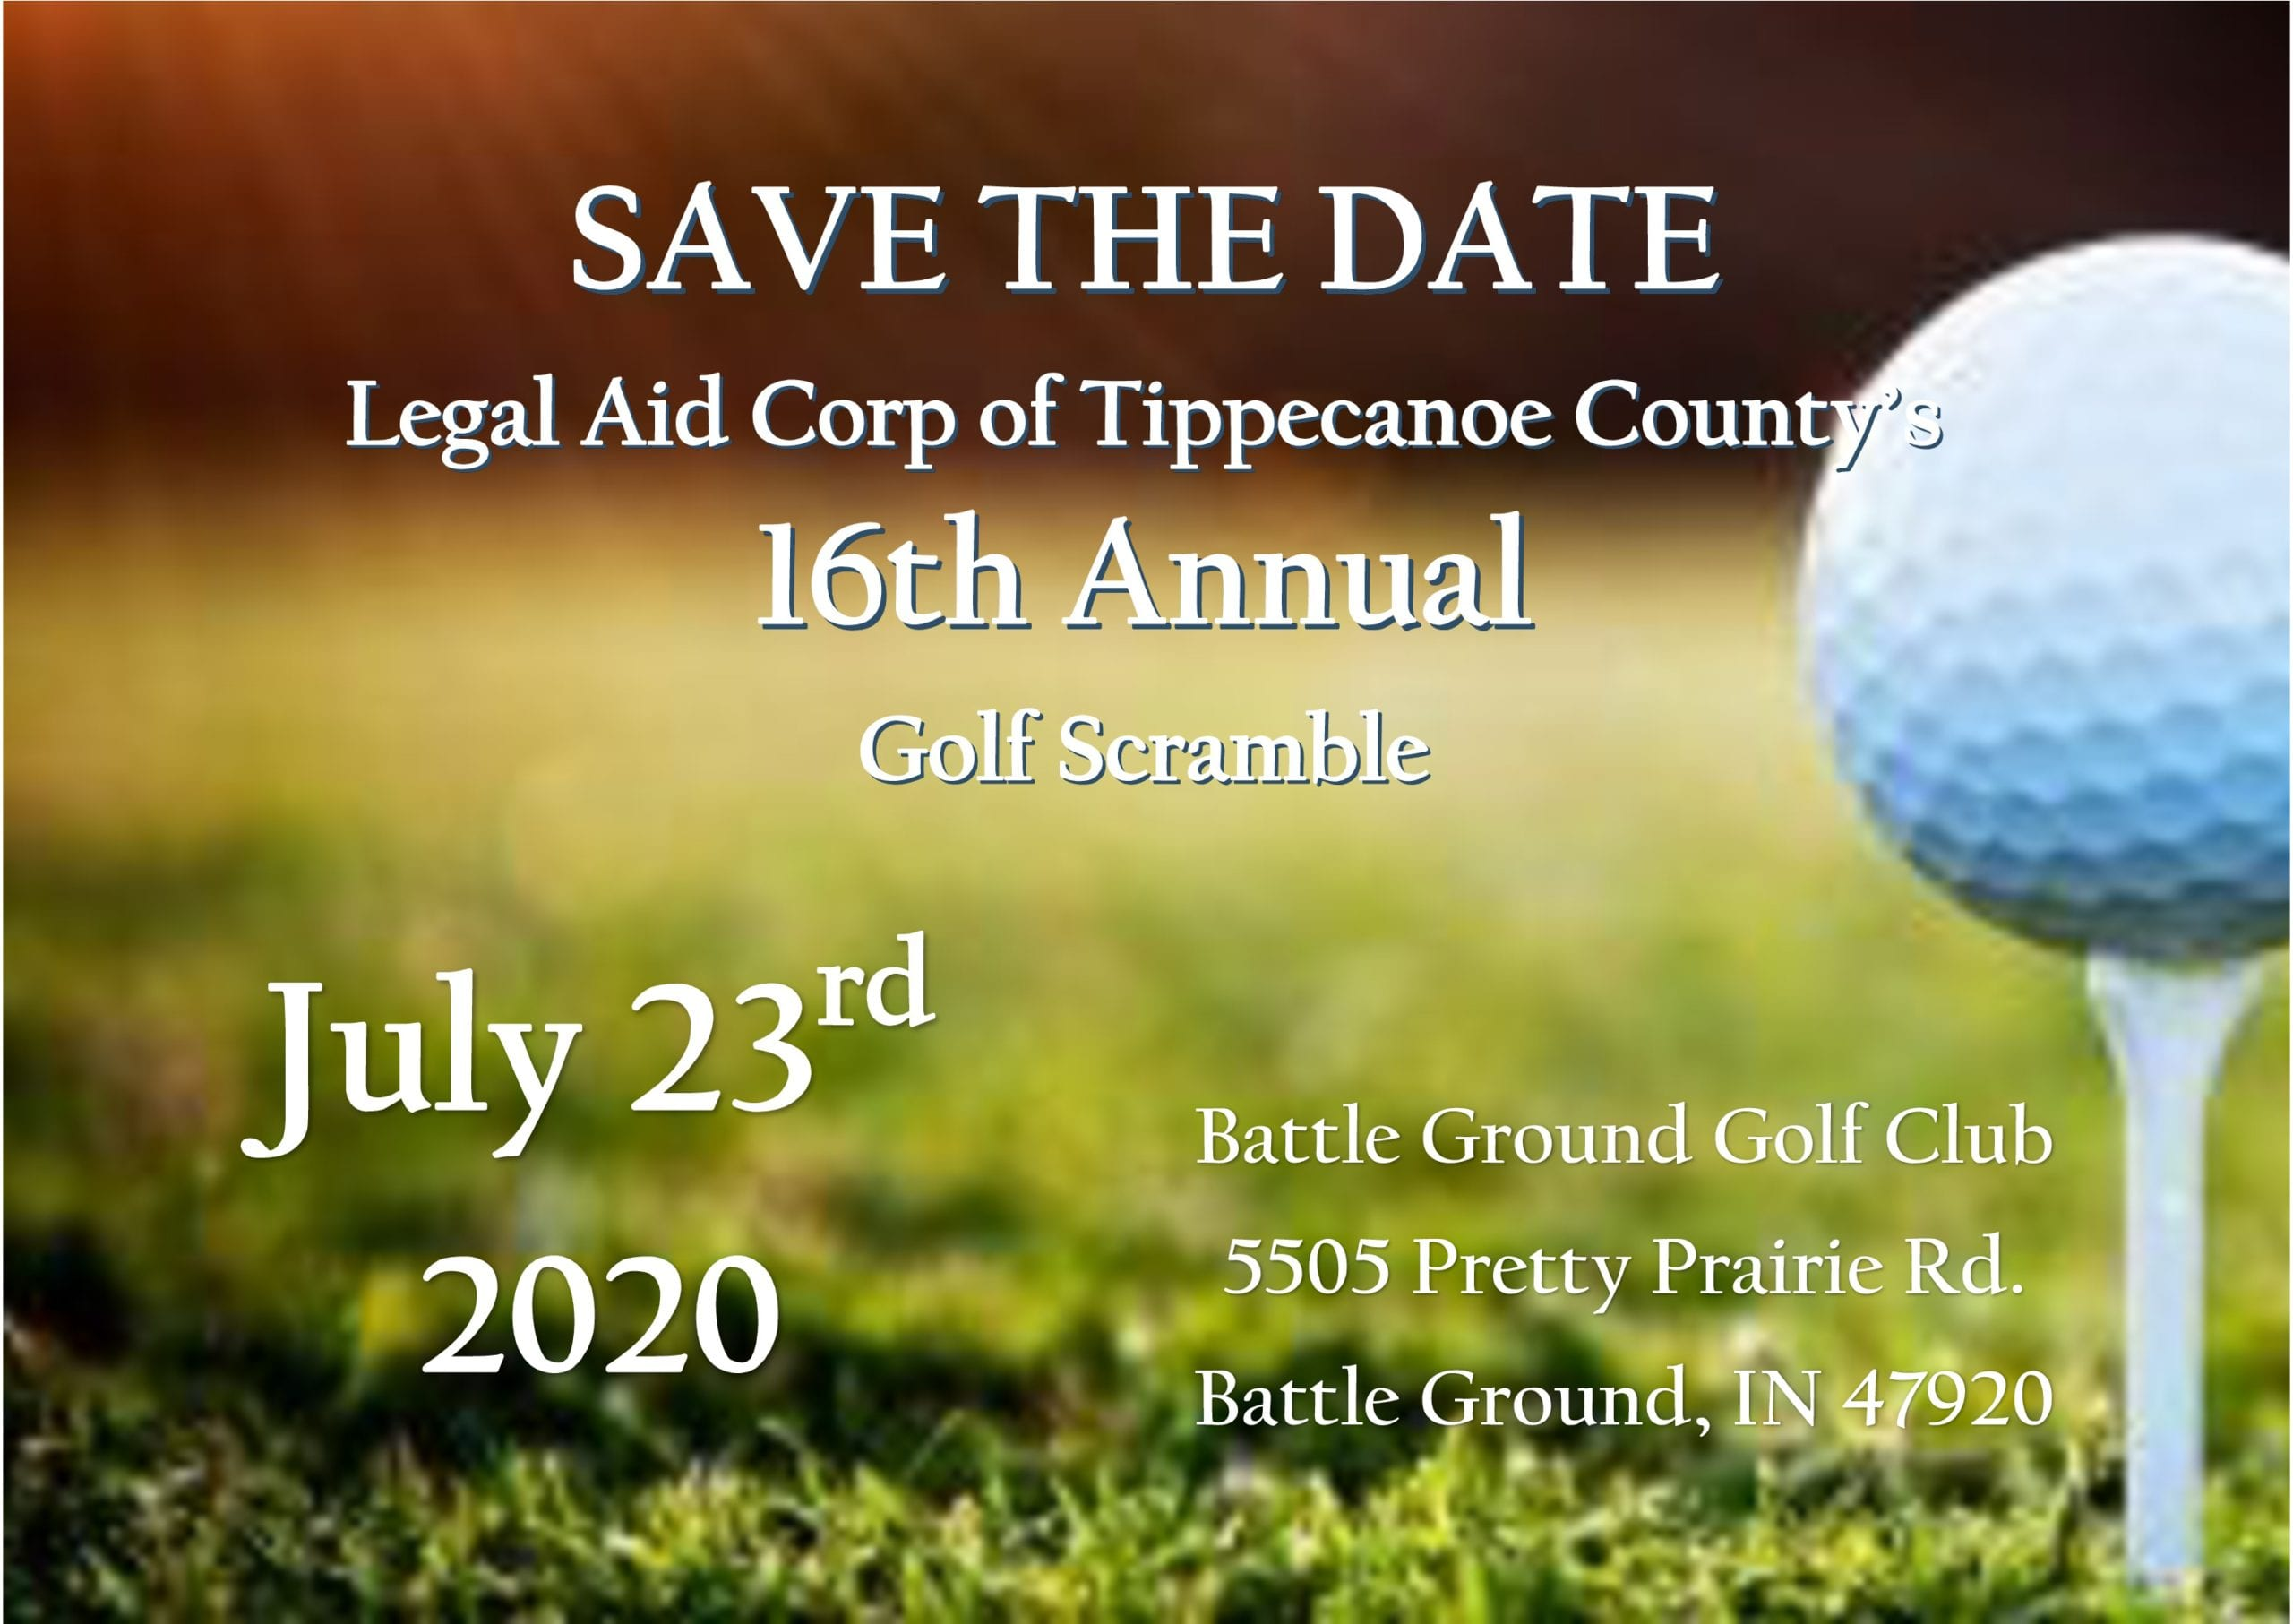 2020 Golf Scramble will be on July 23rd